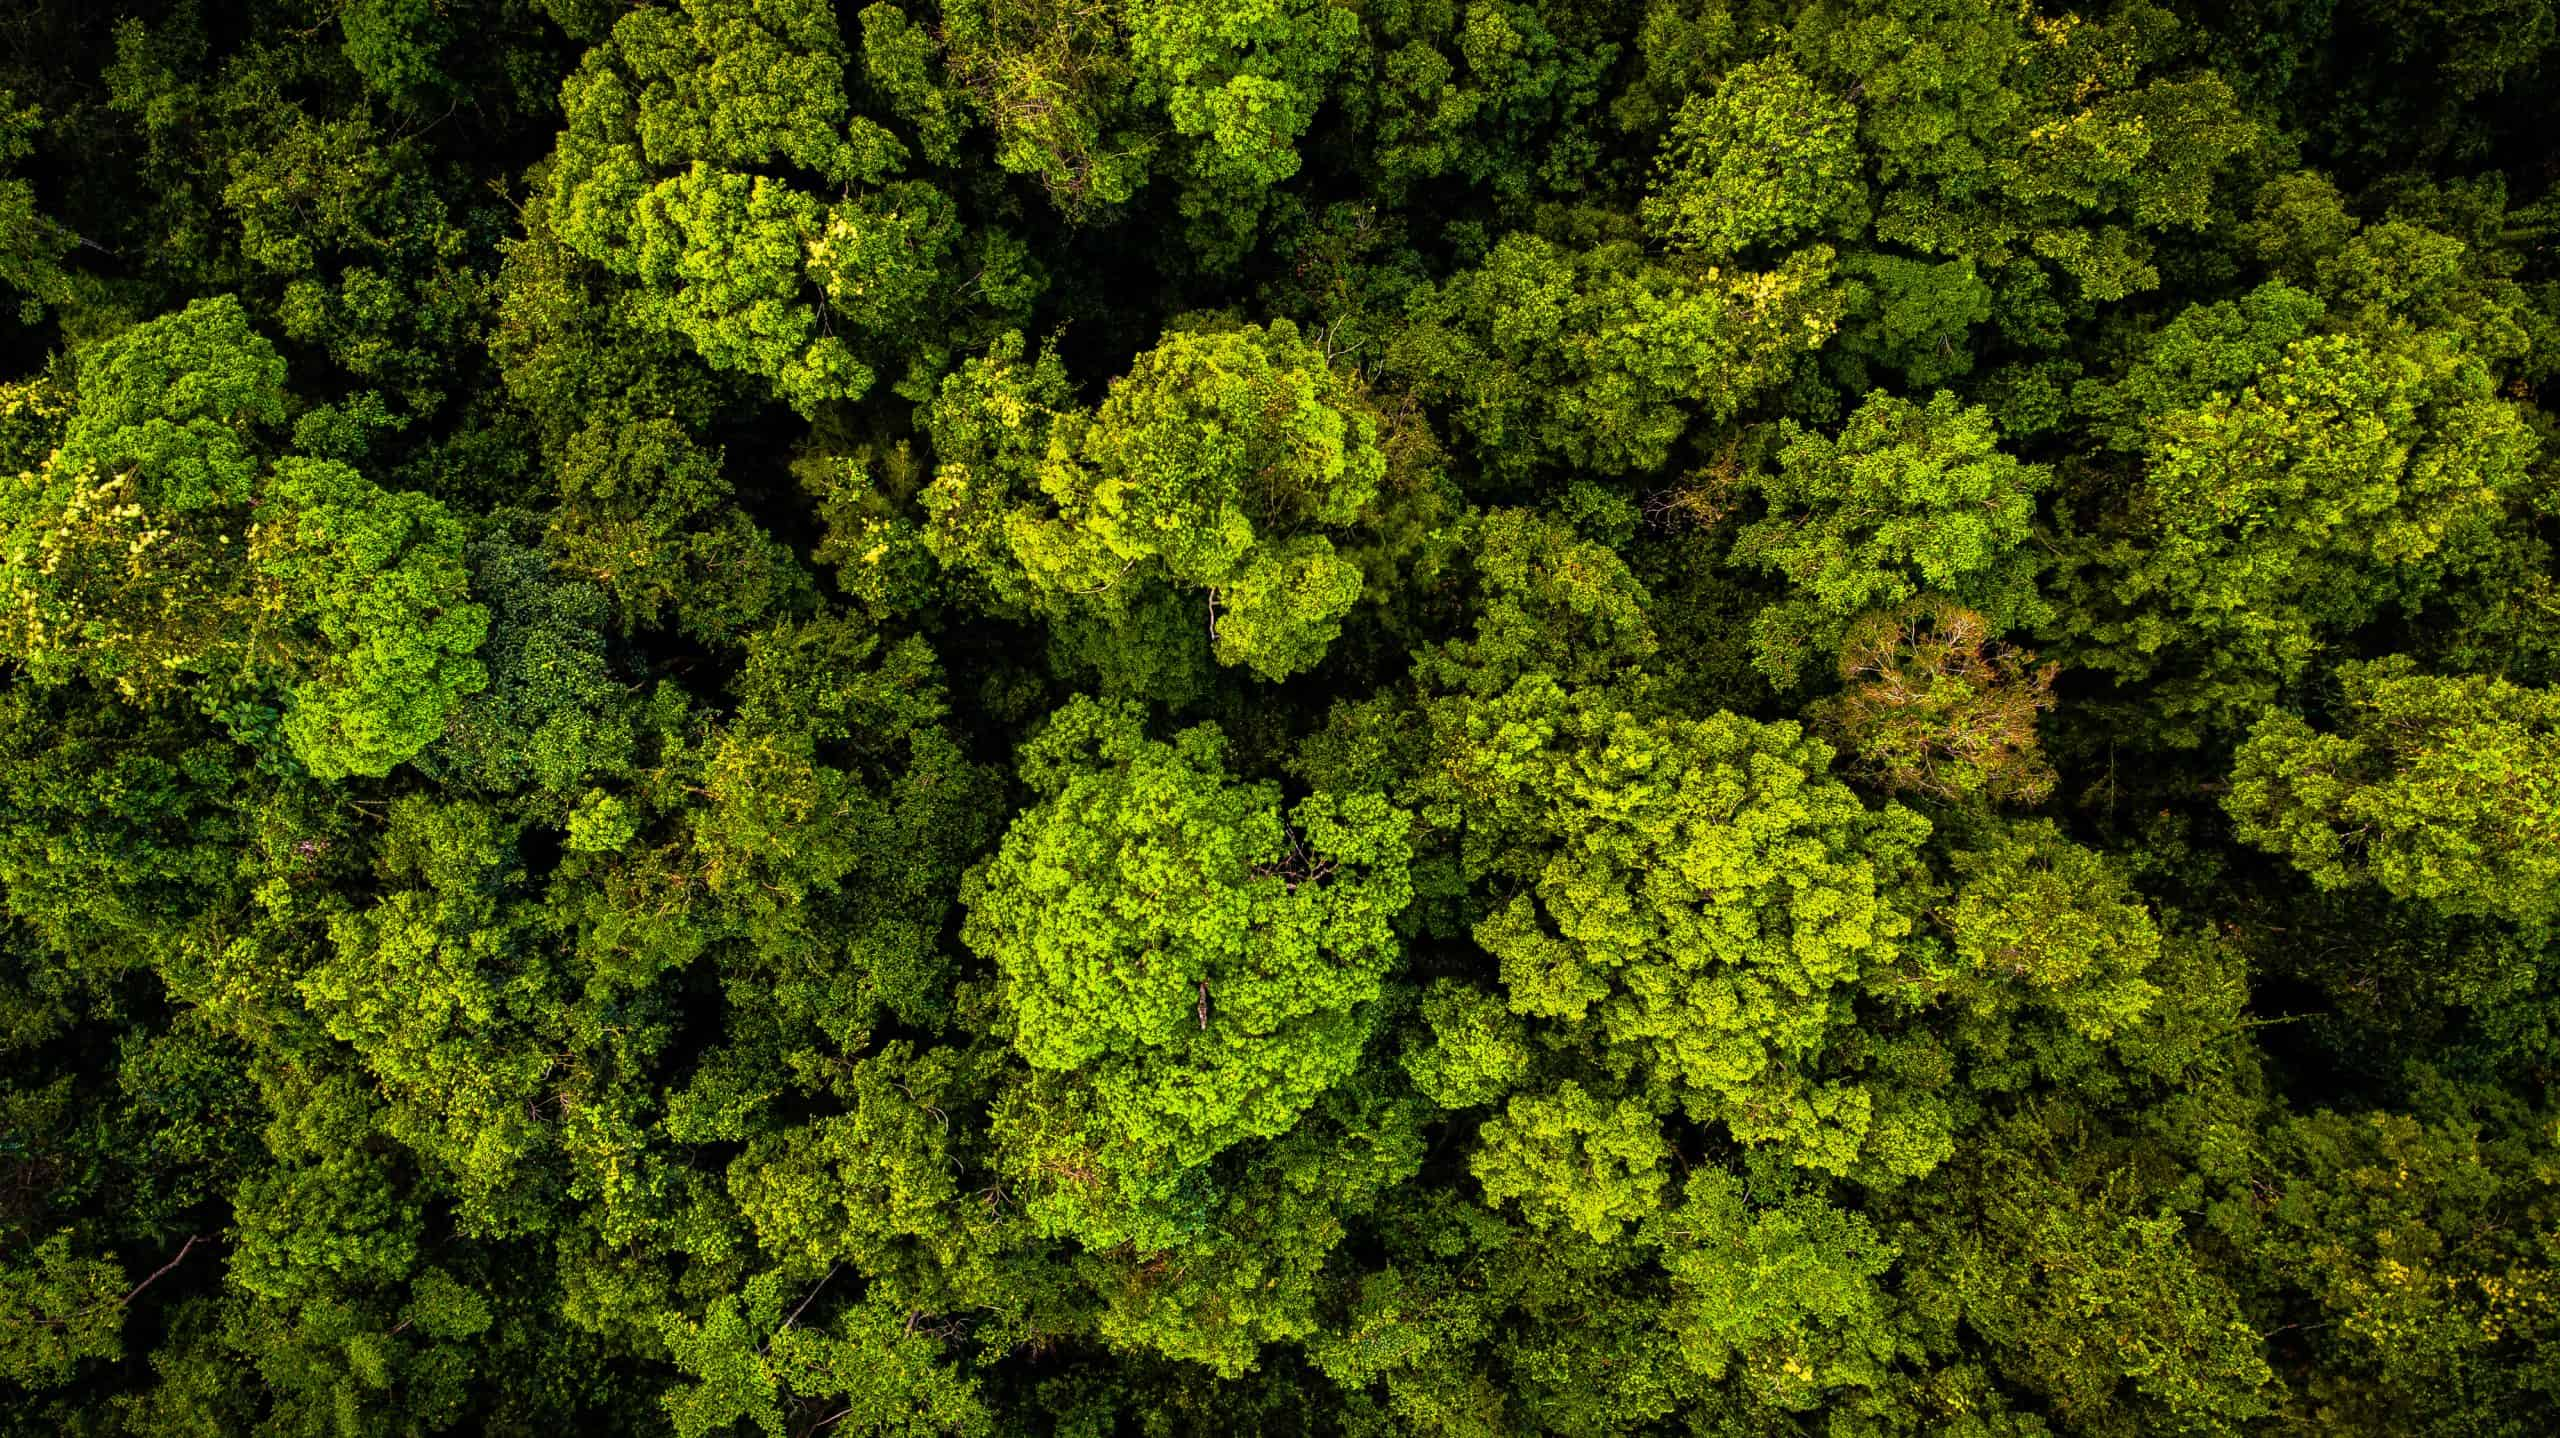 8 Reasons We Need To Save (Tropical) Forests